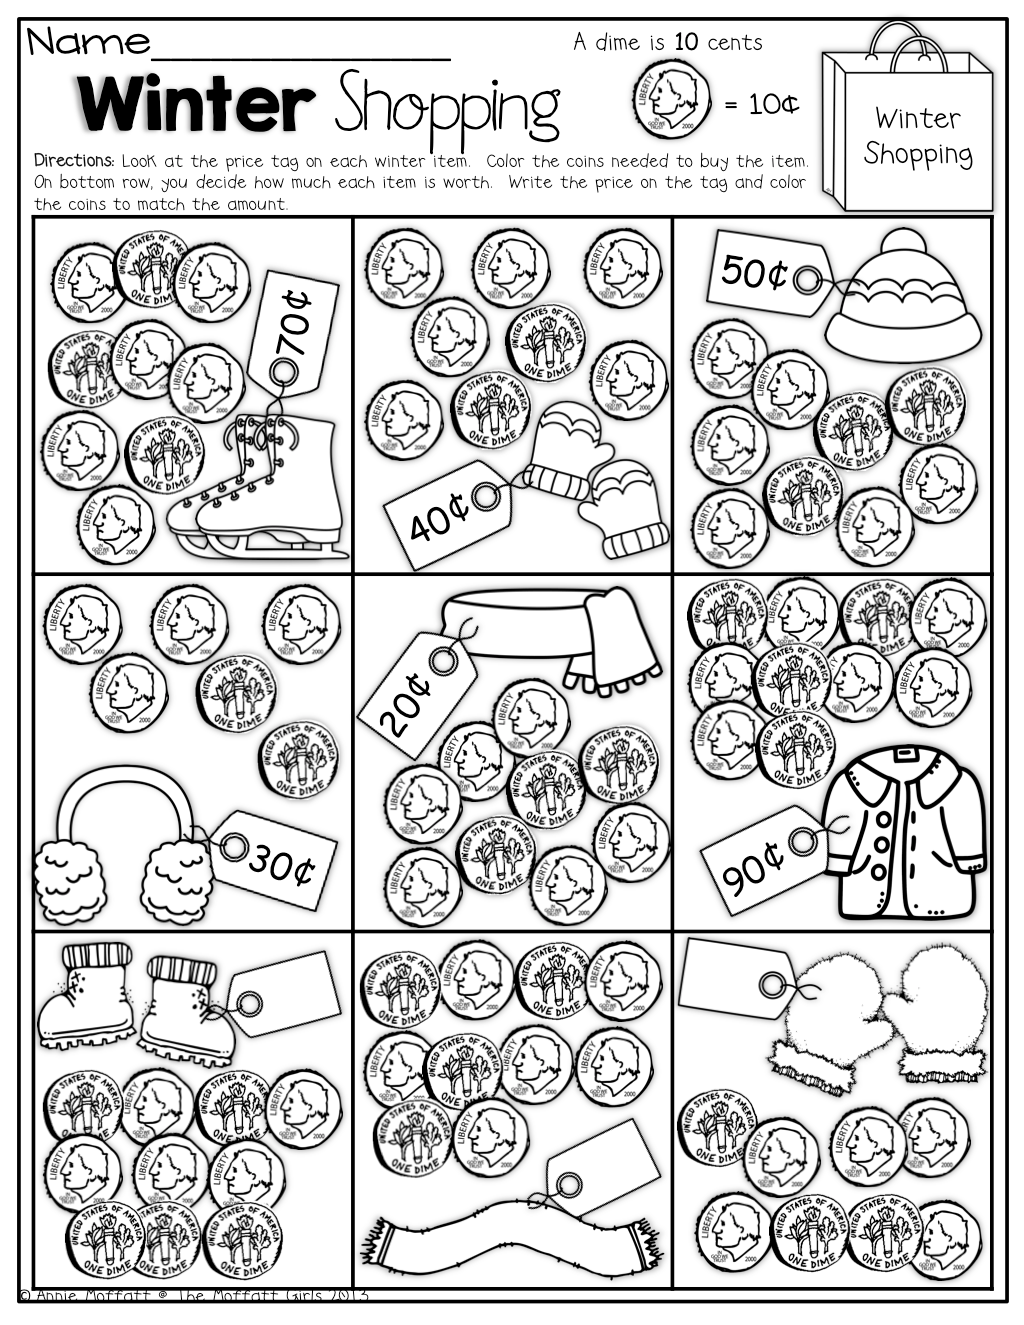 Color The Coins Needed To Buy Each Item Fun Way To Practice Counting Coins